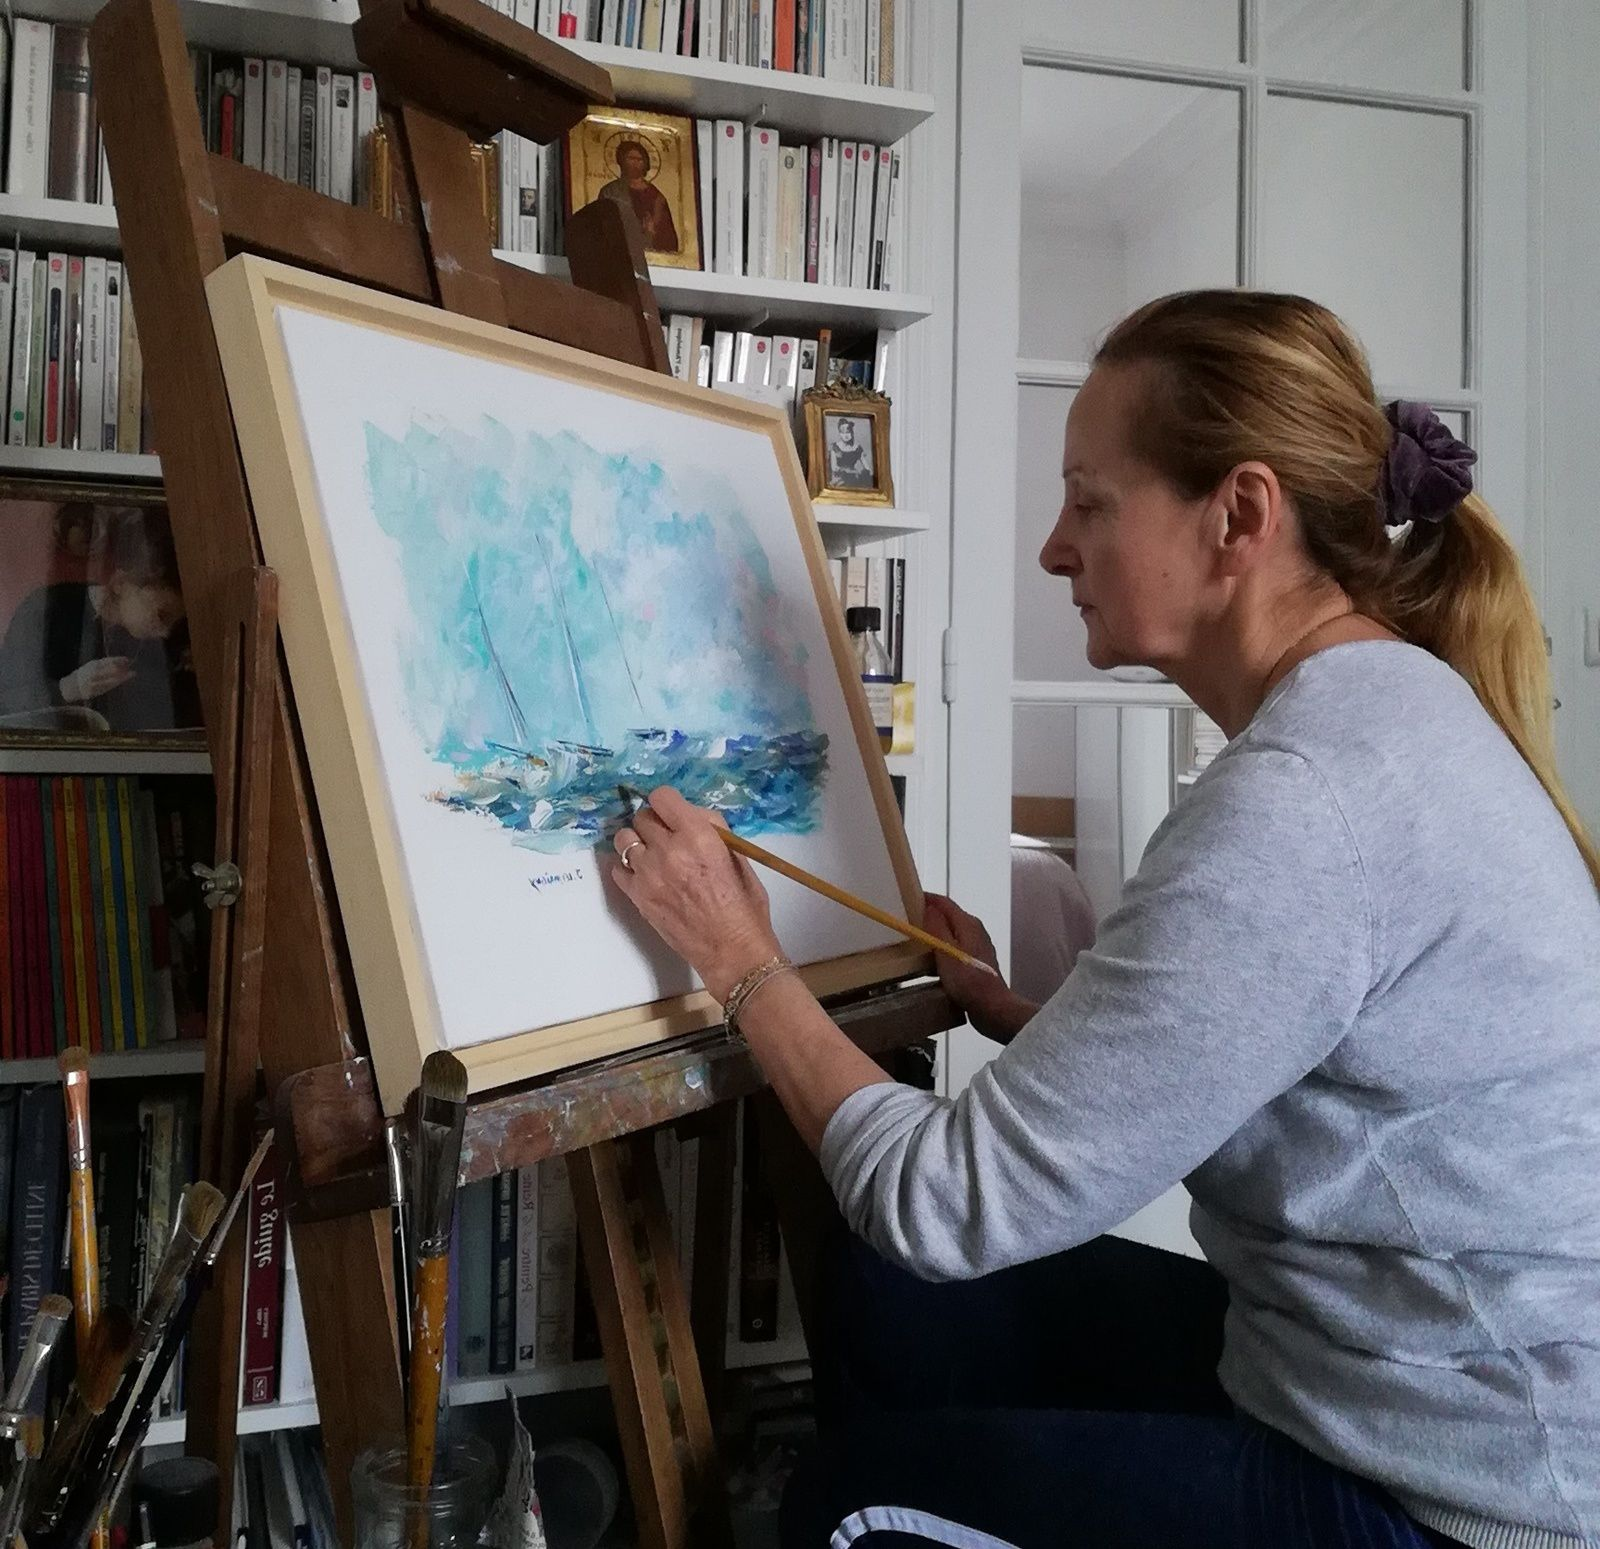 #Avranches - #Culture -  Joëlle Lemarigny expose à l'Atelier Bergevin !